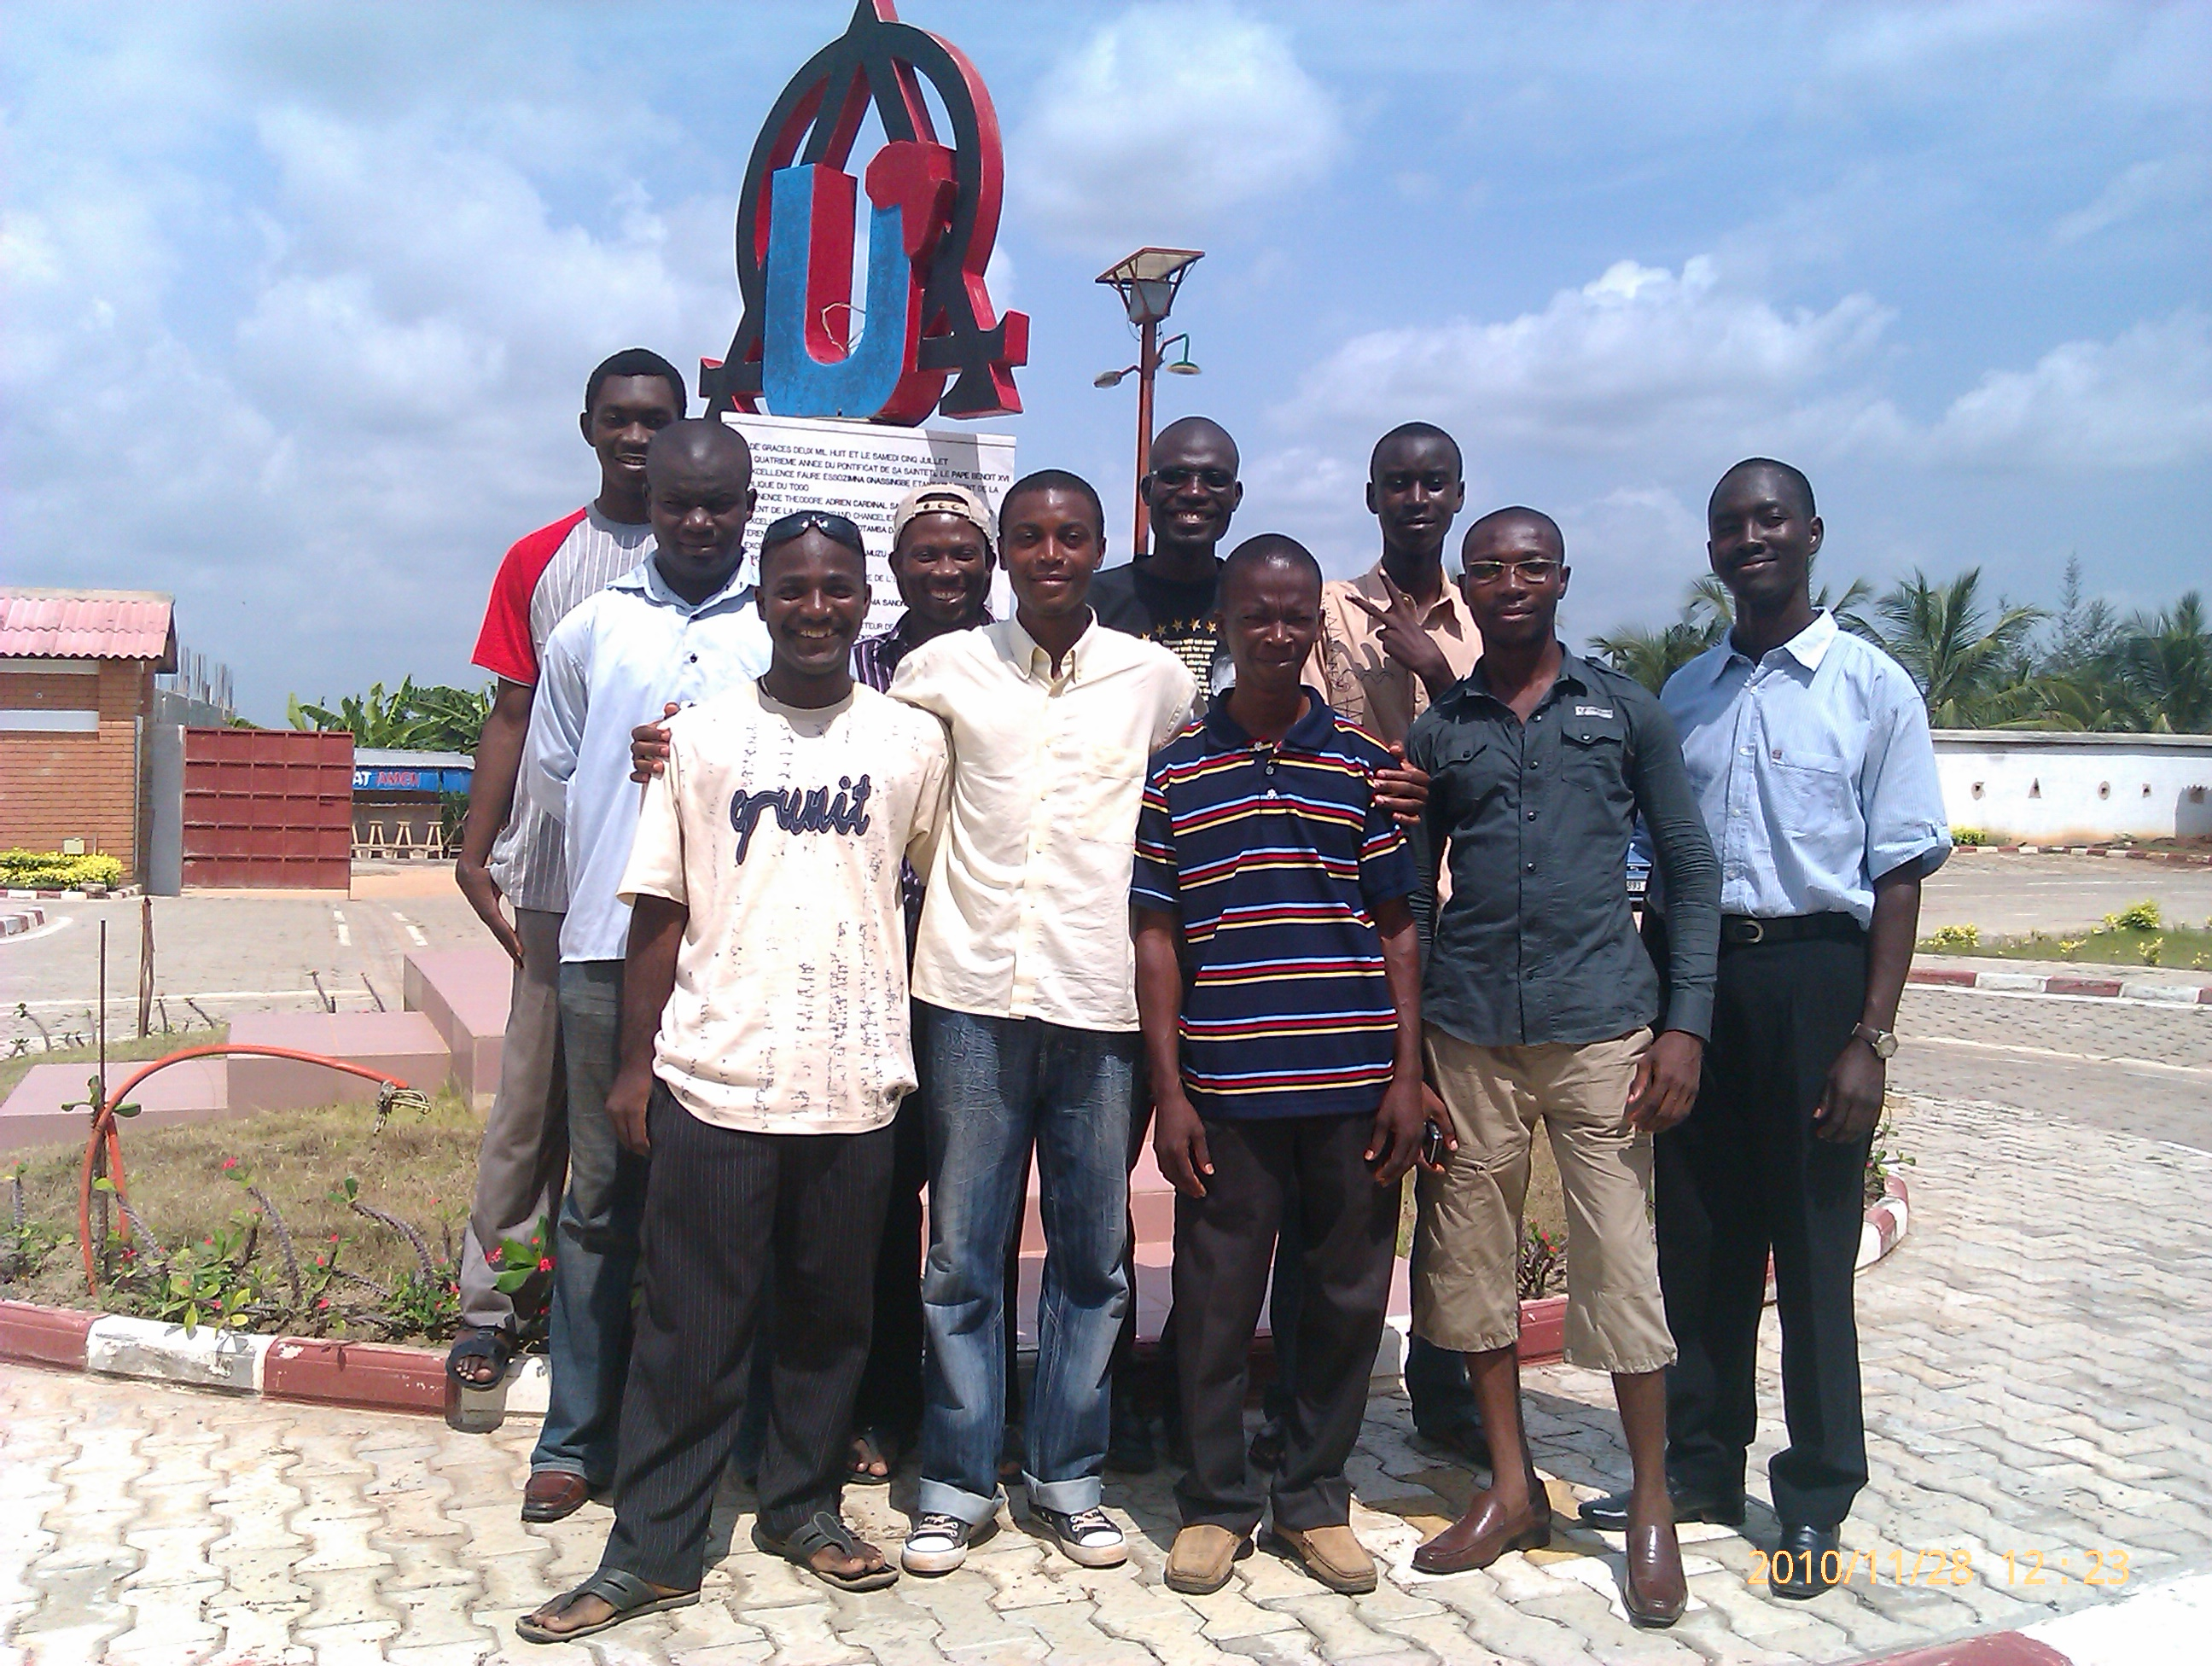 A group from lome, Togo